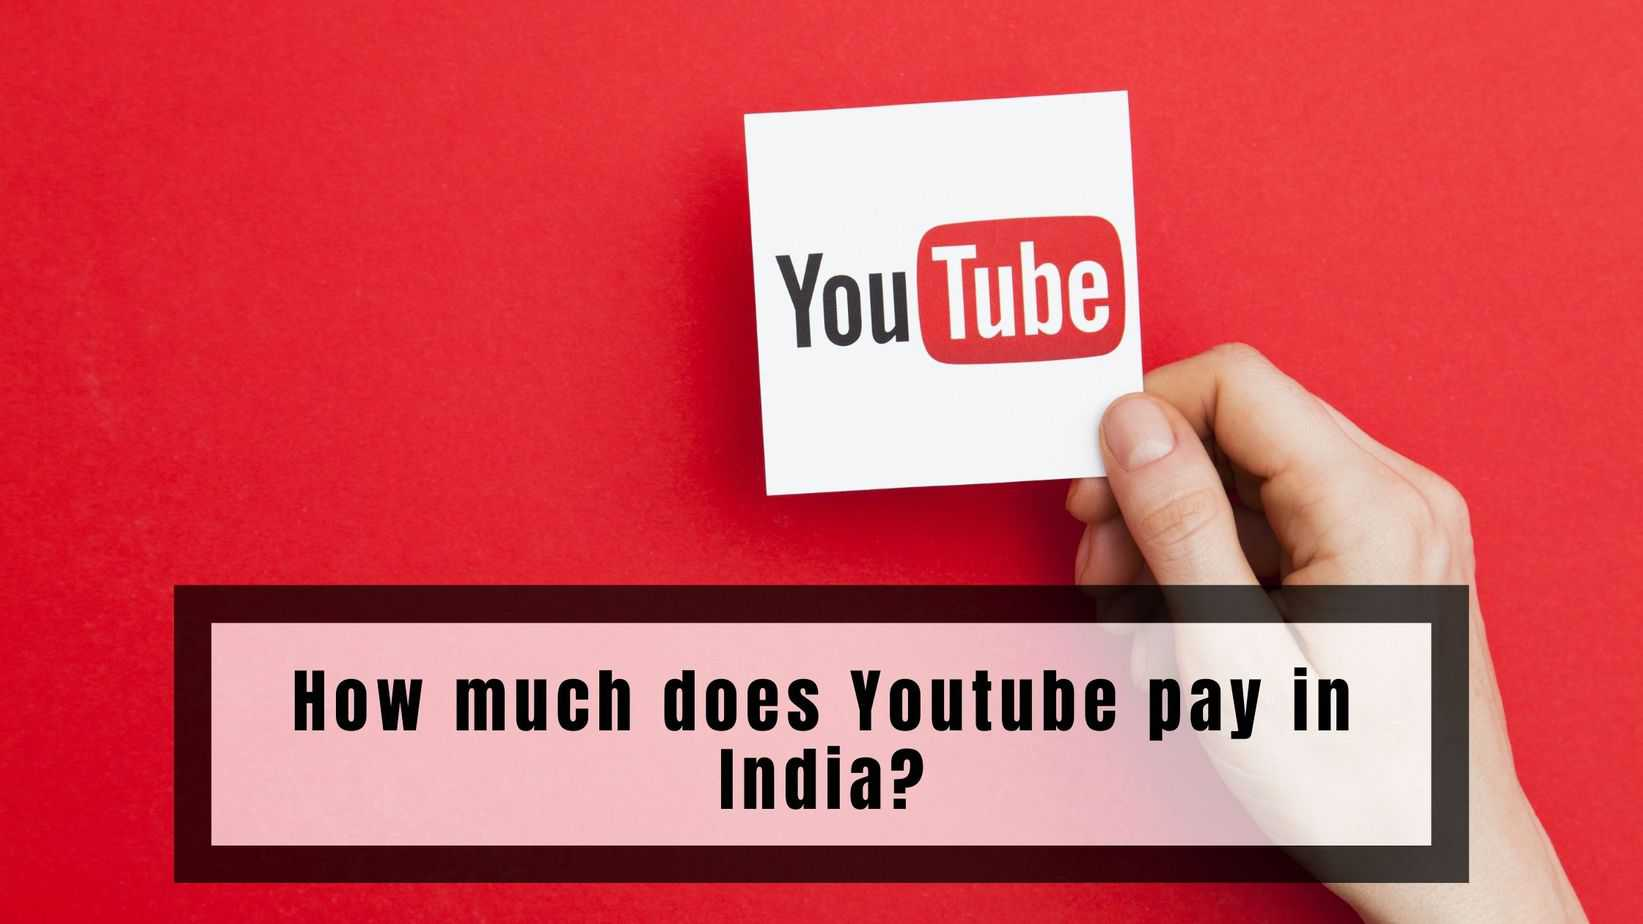 How much does Youtube pay in India